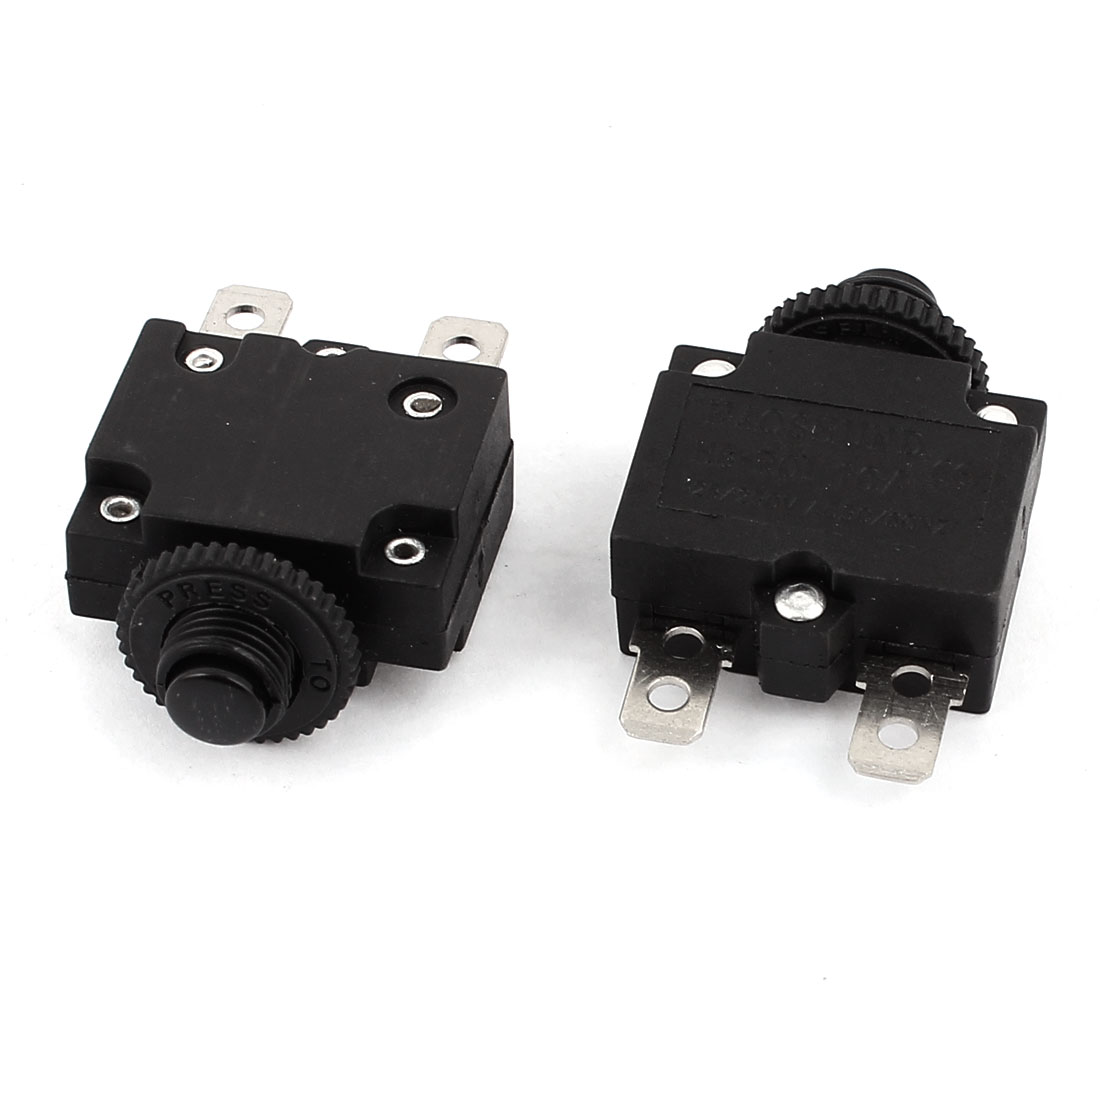 AC125V/250V 10A HS-R01 Air Compressor Overload Protection Circuit Breaker 2 Pcs